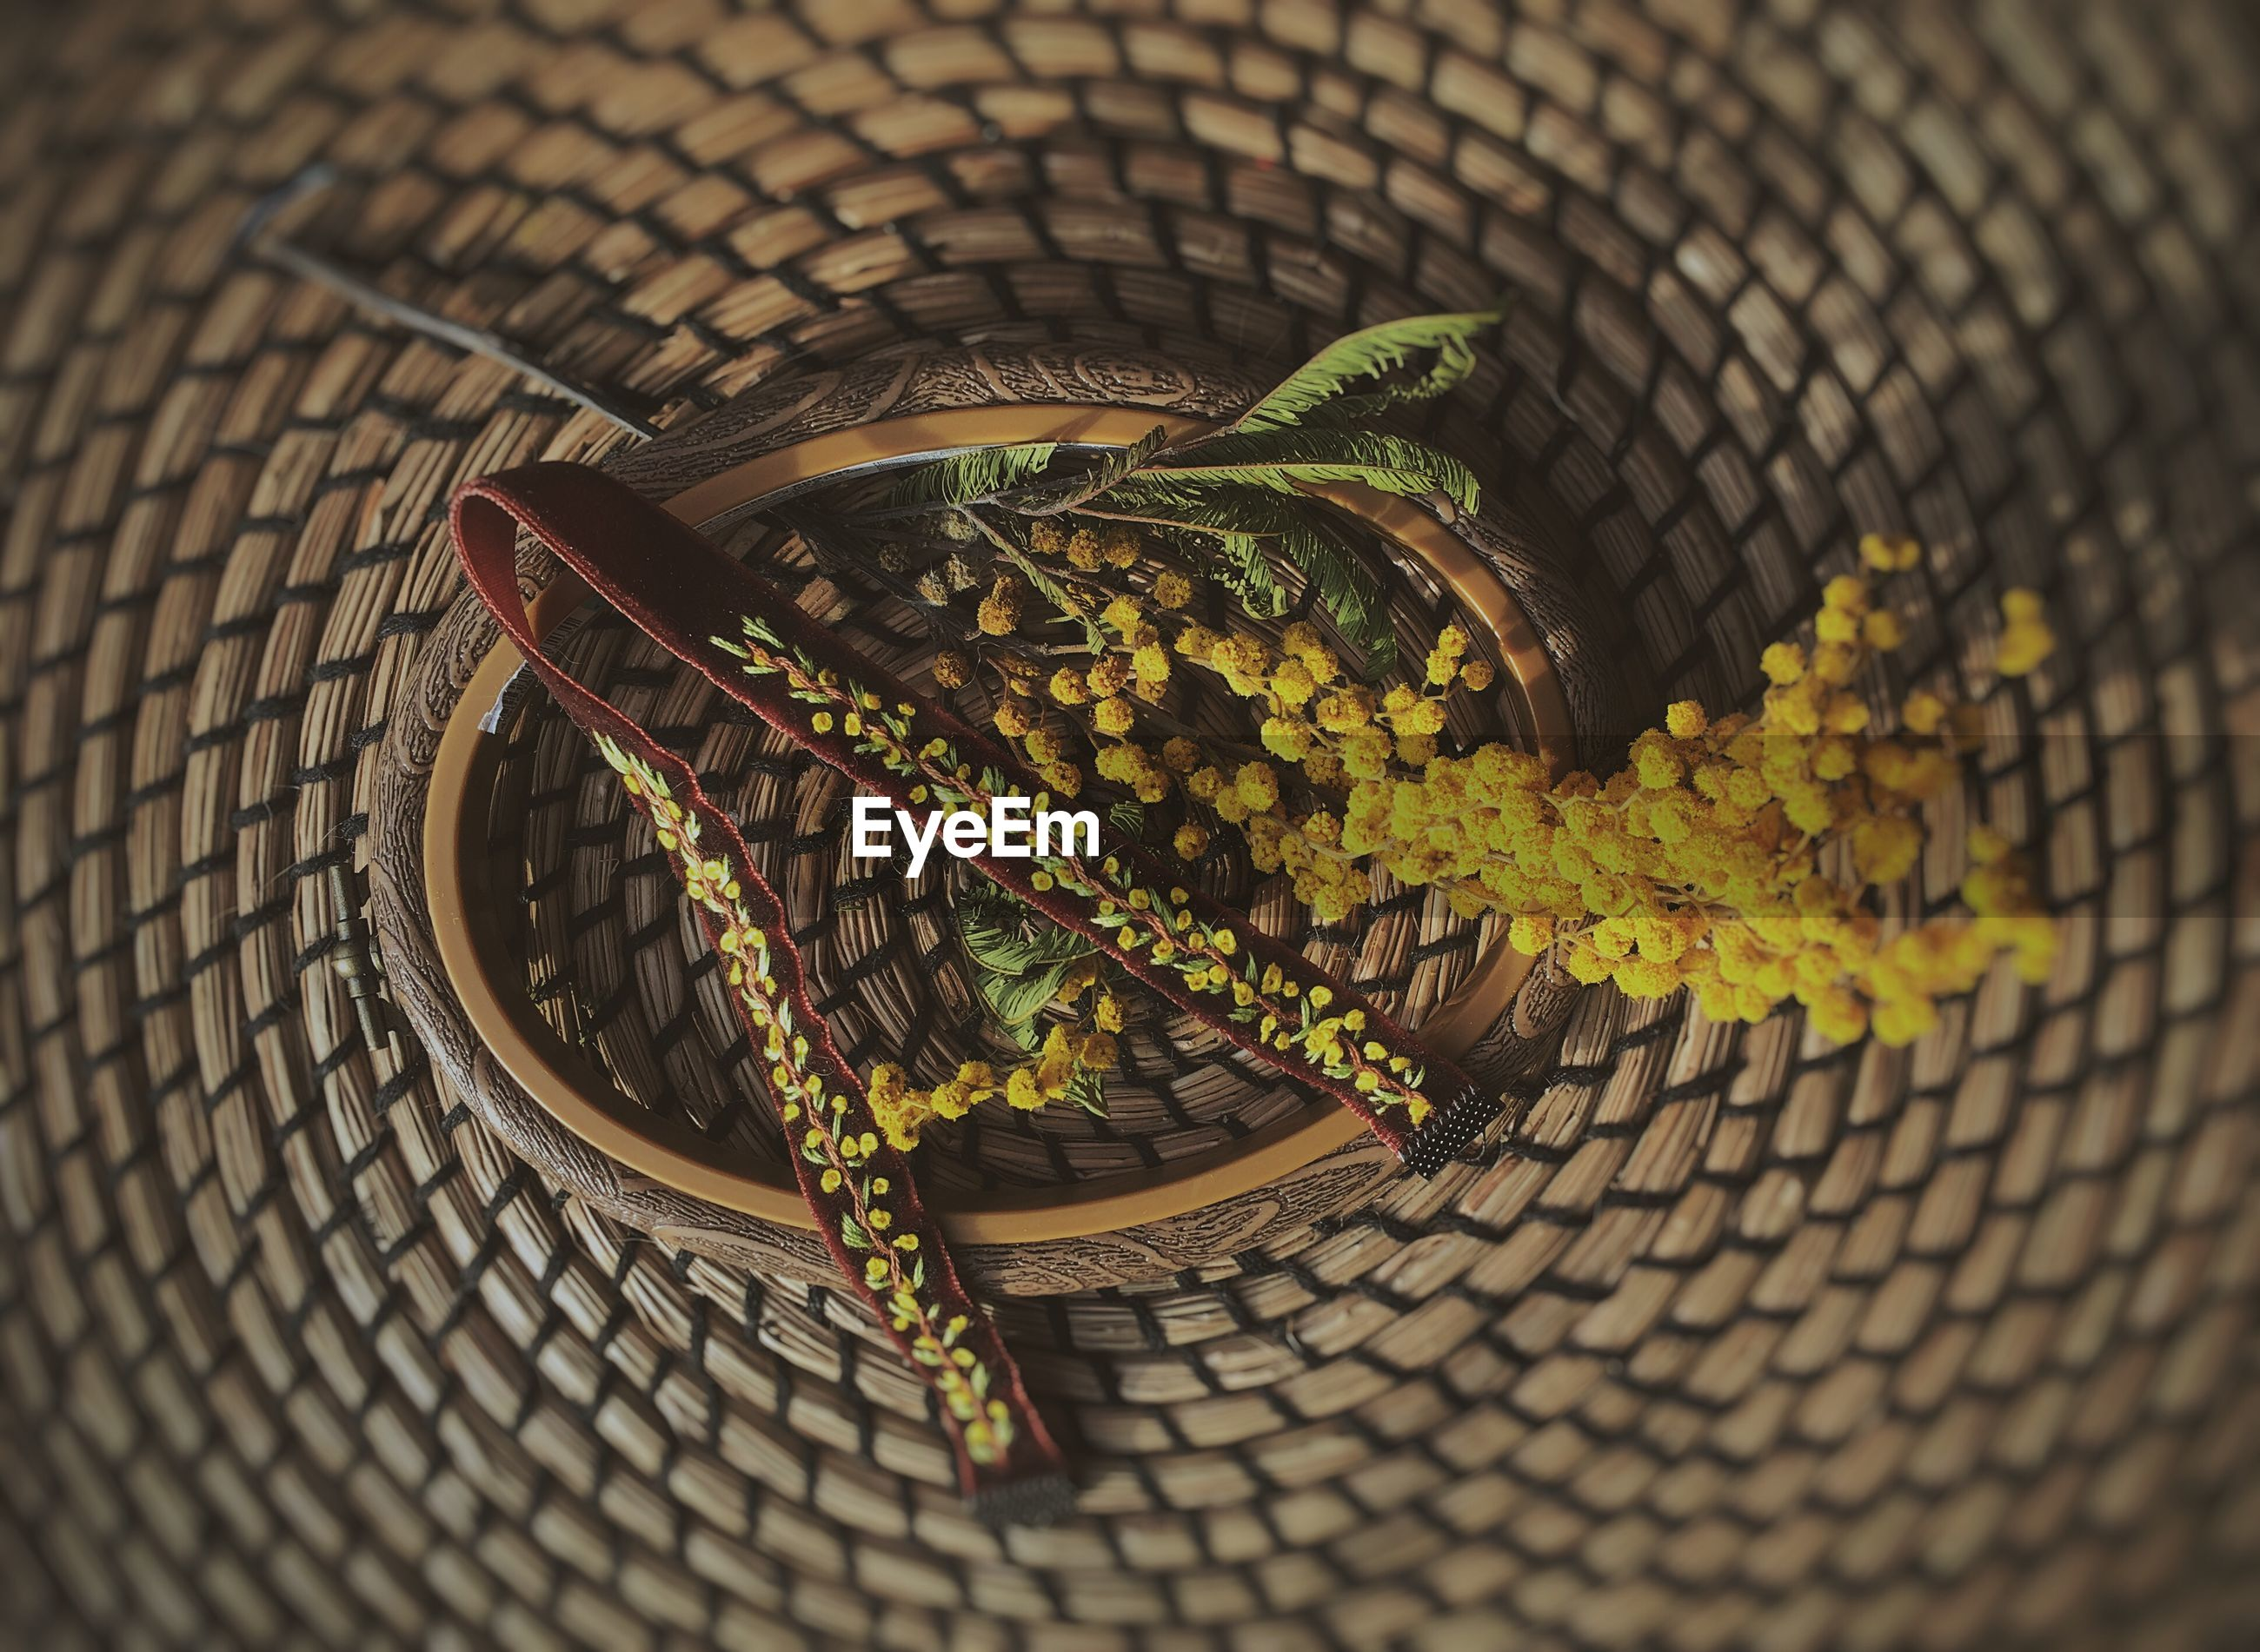 HIGH ANGLE VIEW OF A LIZARD ON BASKET